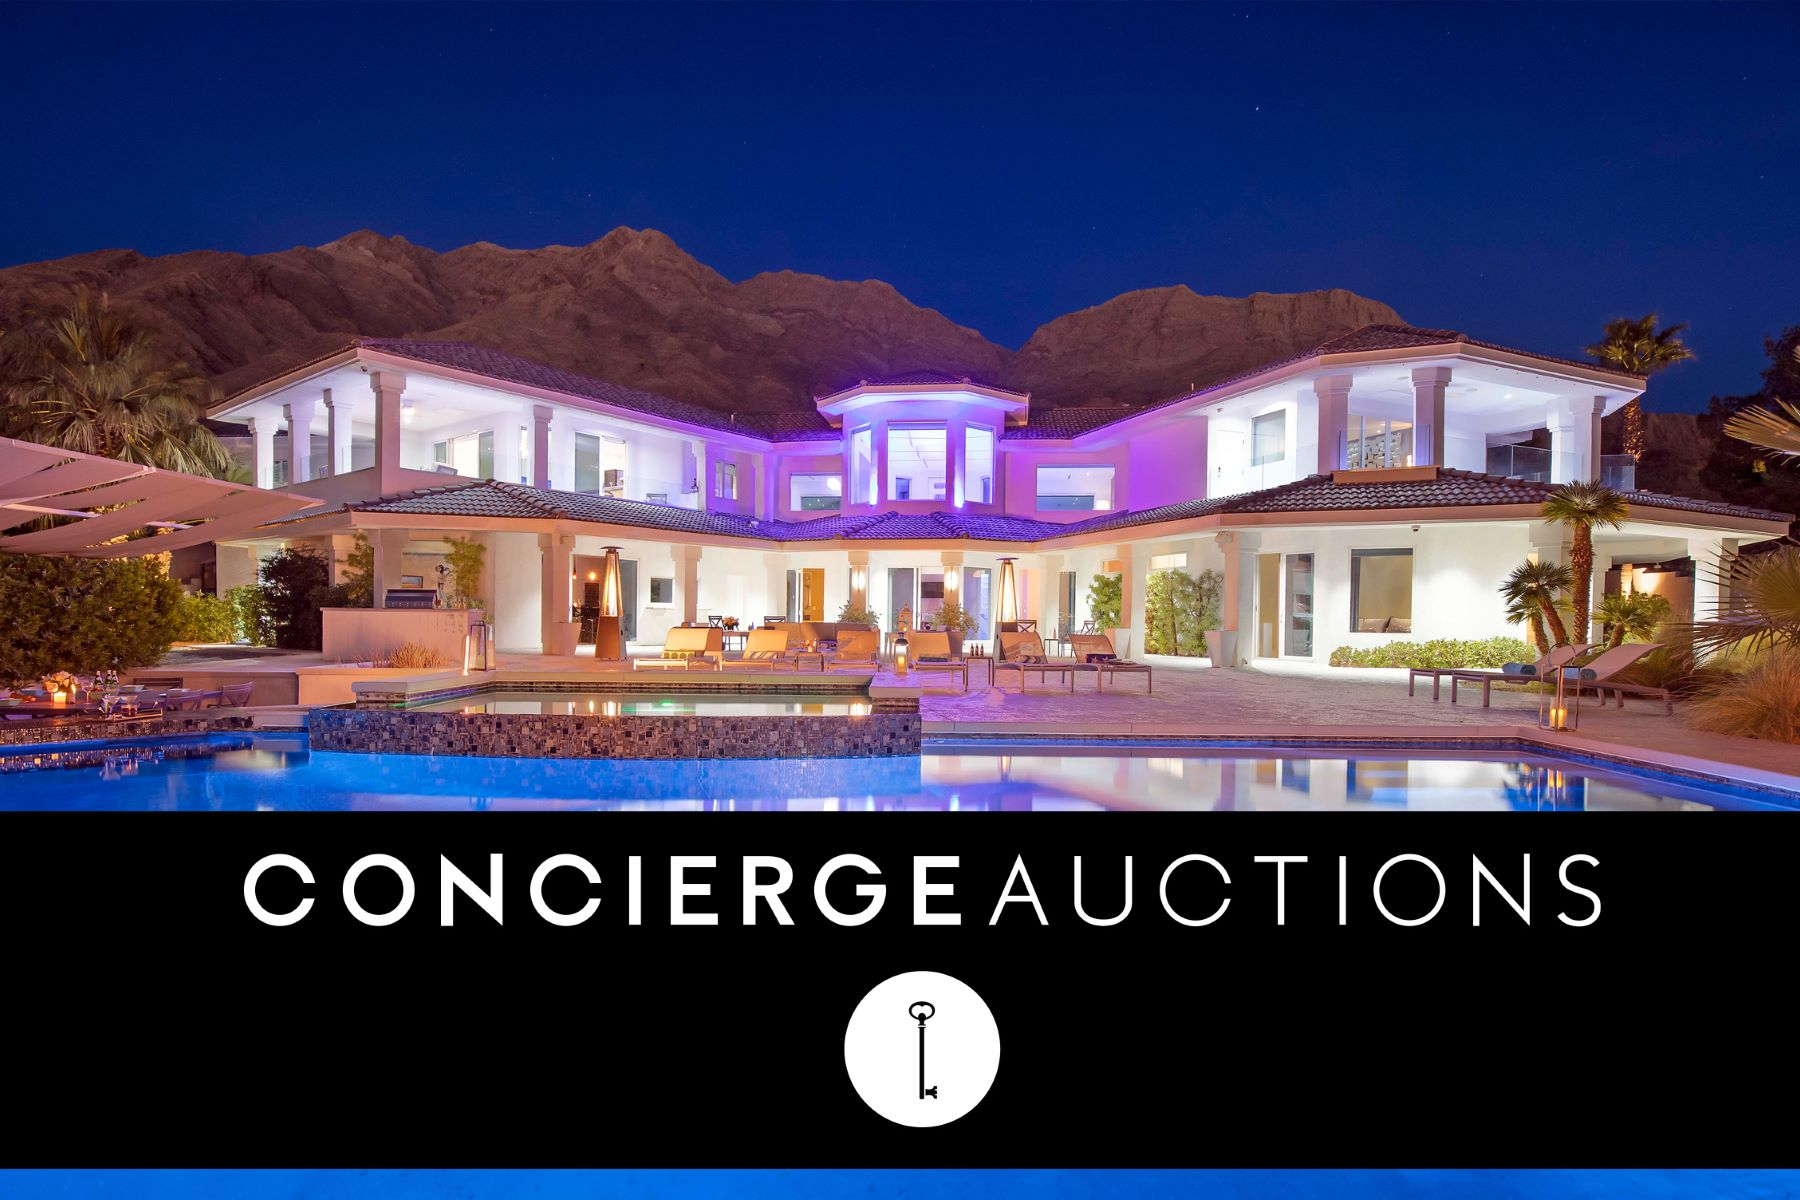 Single Family Homes por un Venta en LUXURY AUCTION Bid November 4–7, 2019, Previously $4.5M, Reserve $1.97M. 460 Probst Way Las Vegas, Nevada 89110 Estados Unidos